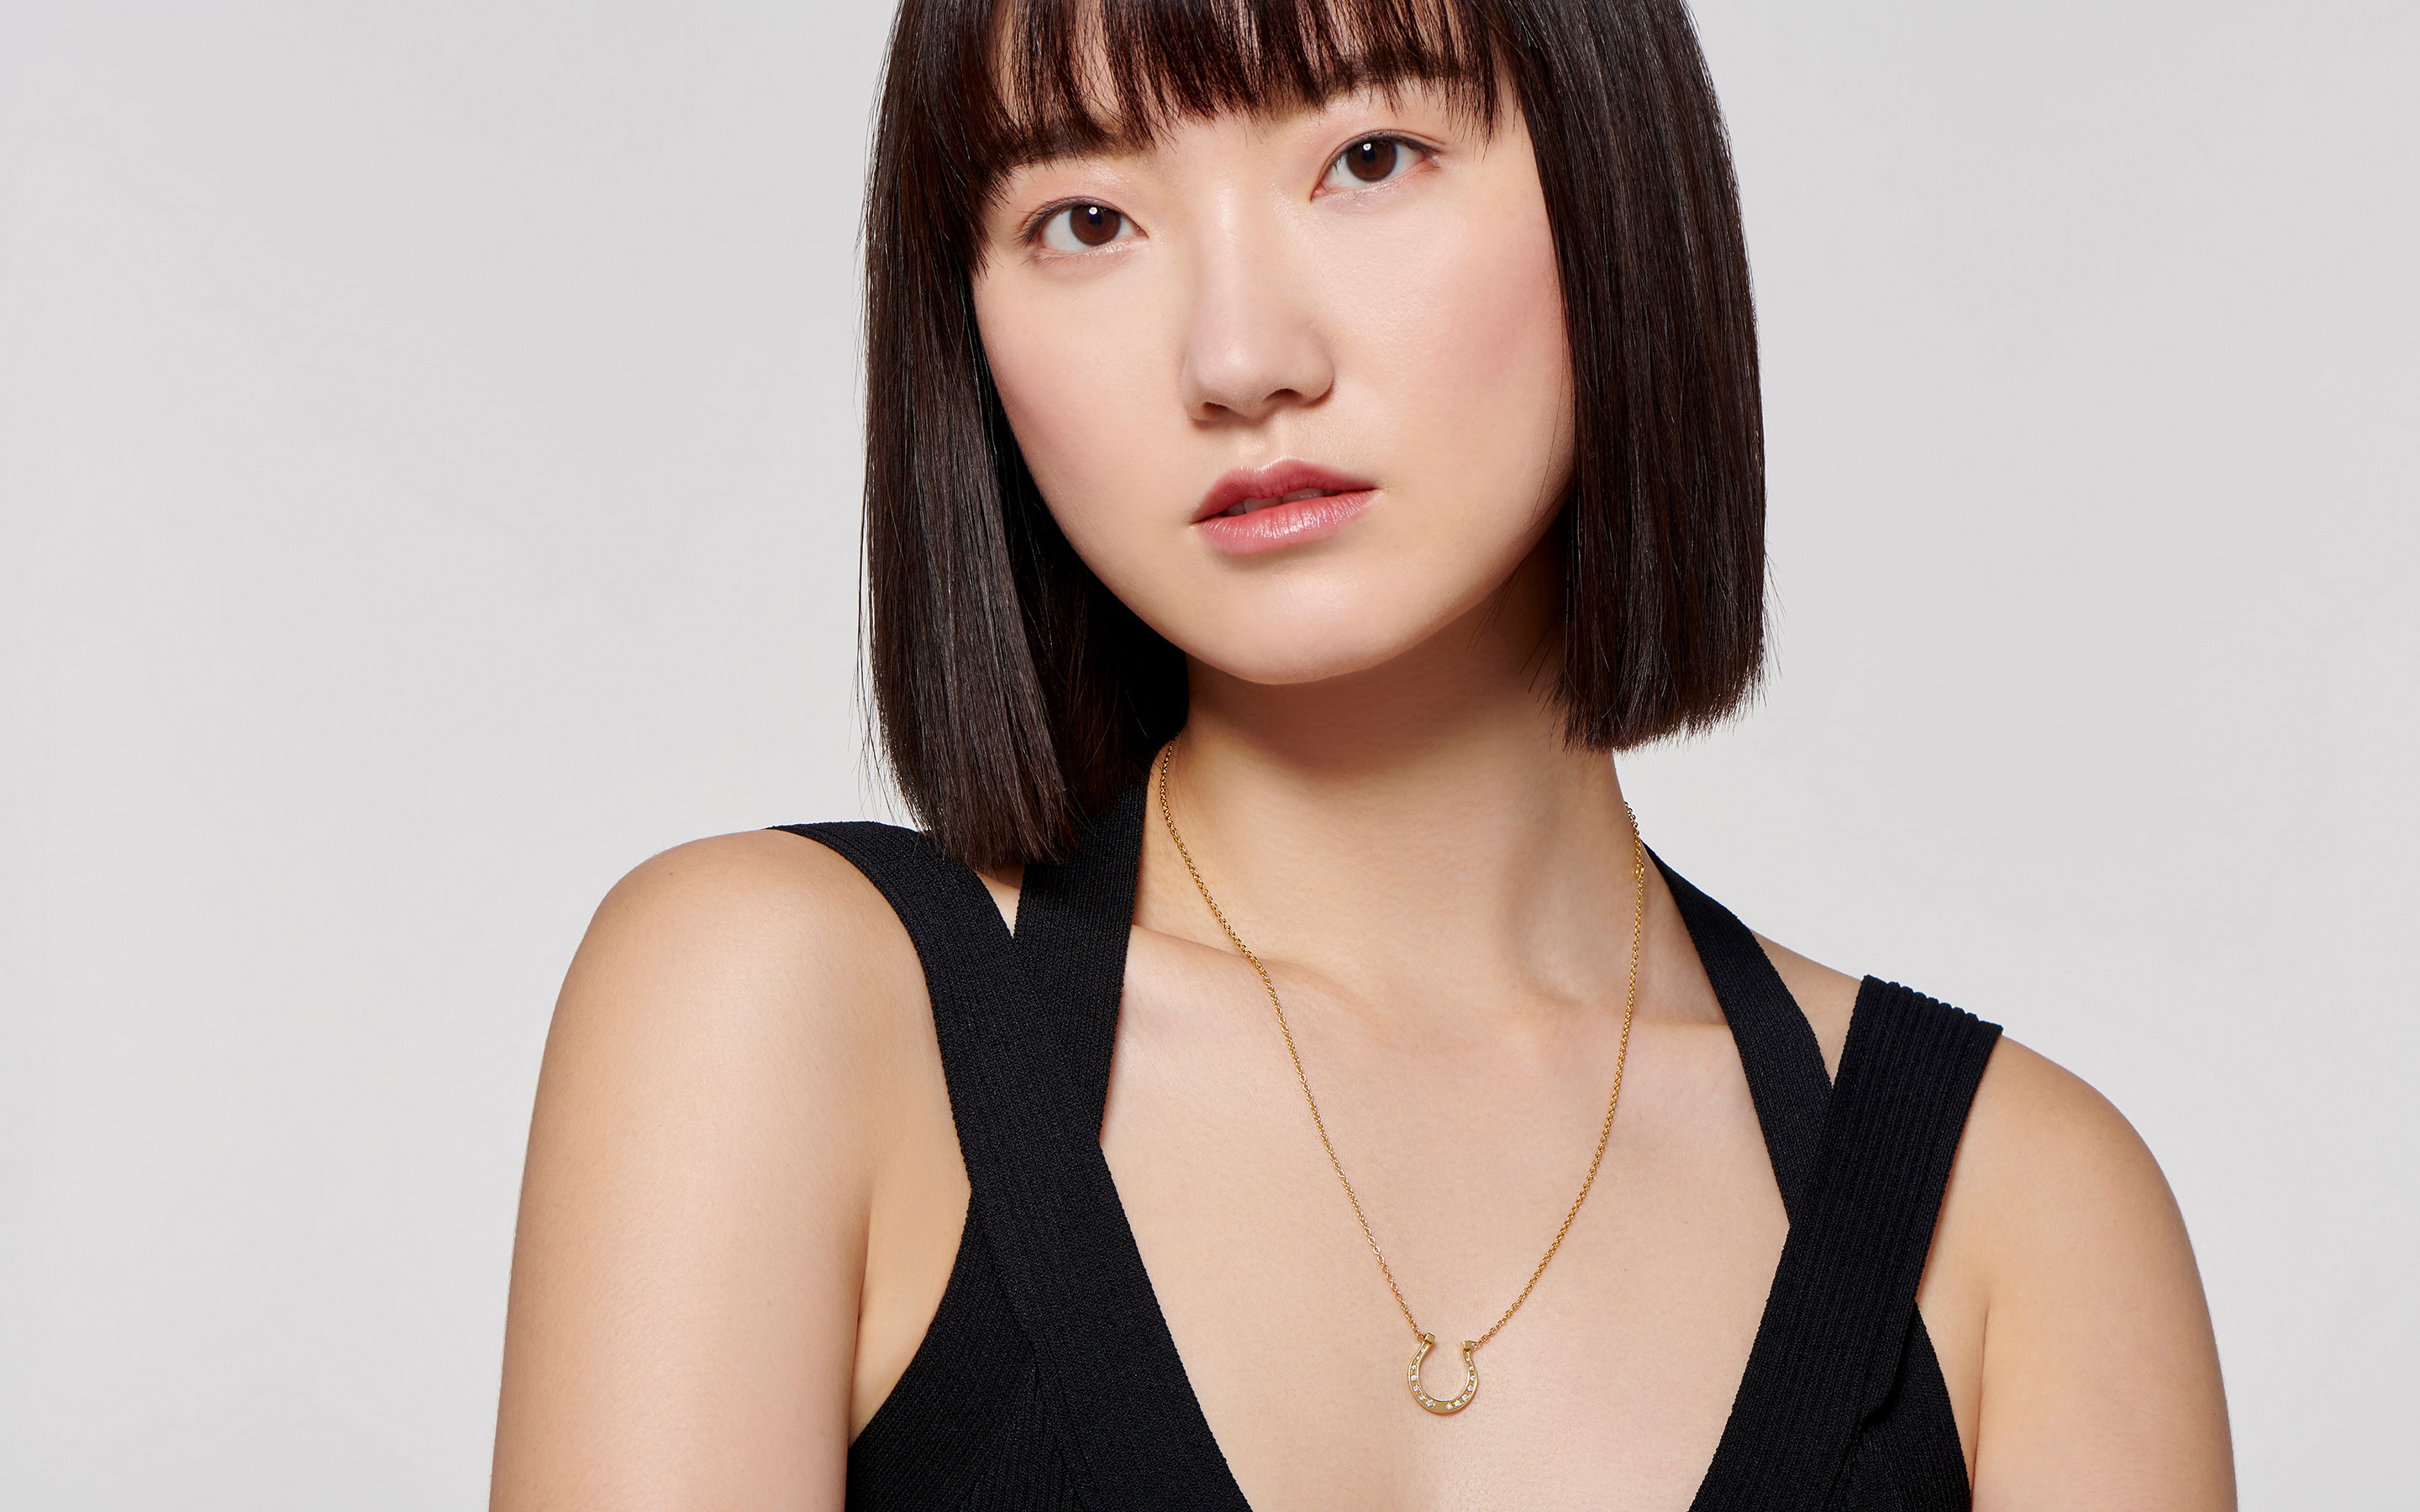 Refined Asian woman wearing a sleek horseshoe pendant 22 karat gold necklace delicately studded in 14 round diamonds